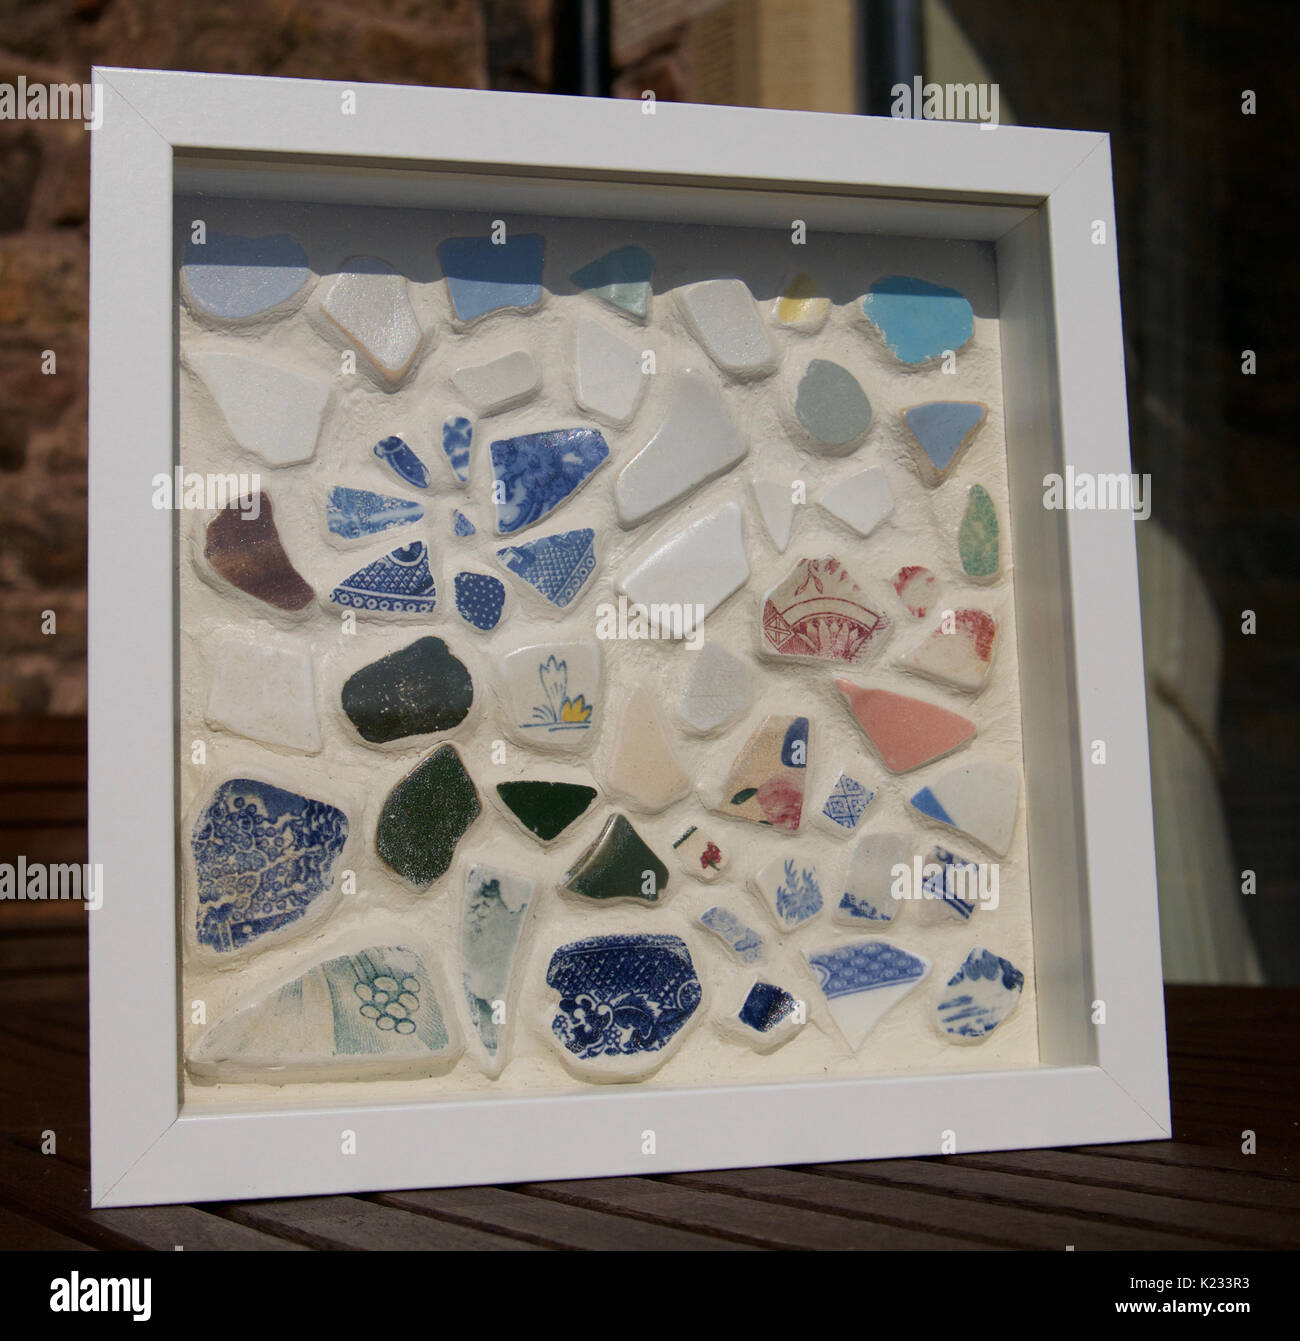 Close up of handmade sea worn pottery mosaic art work set in grout in white frame with blue and white pottery pieces - Stock Image